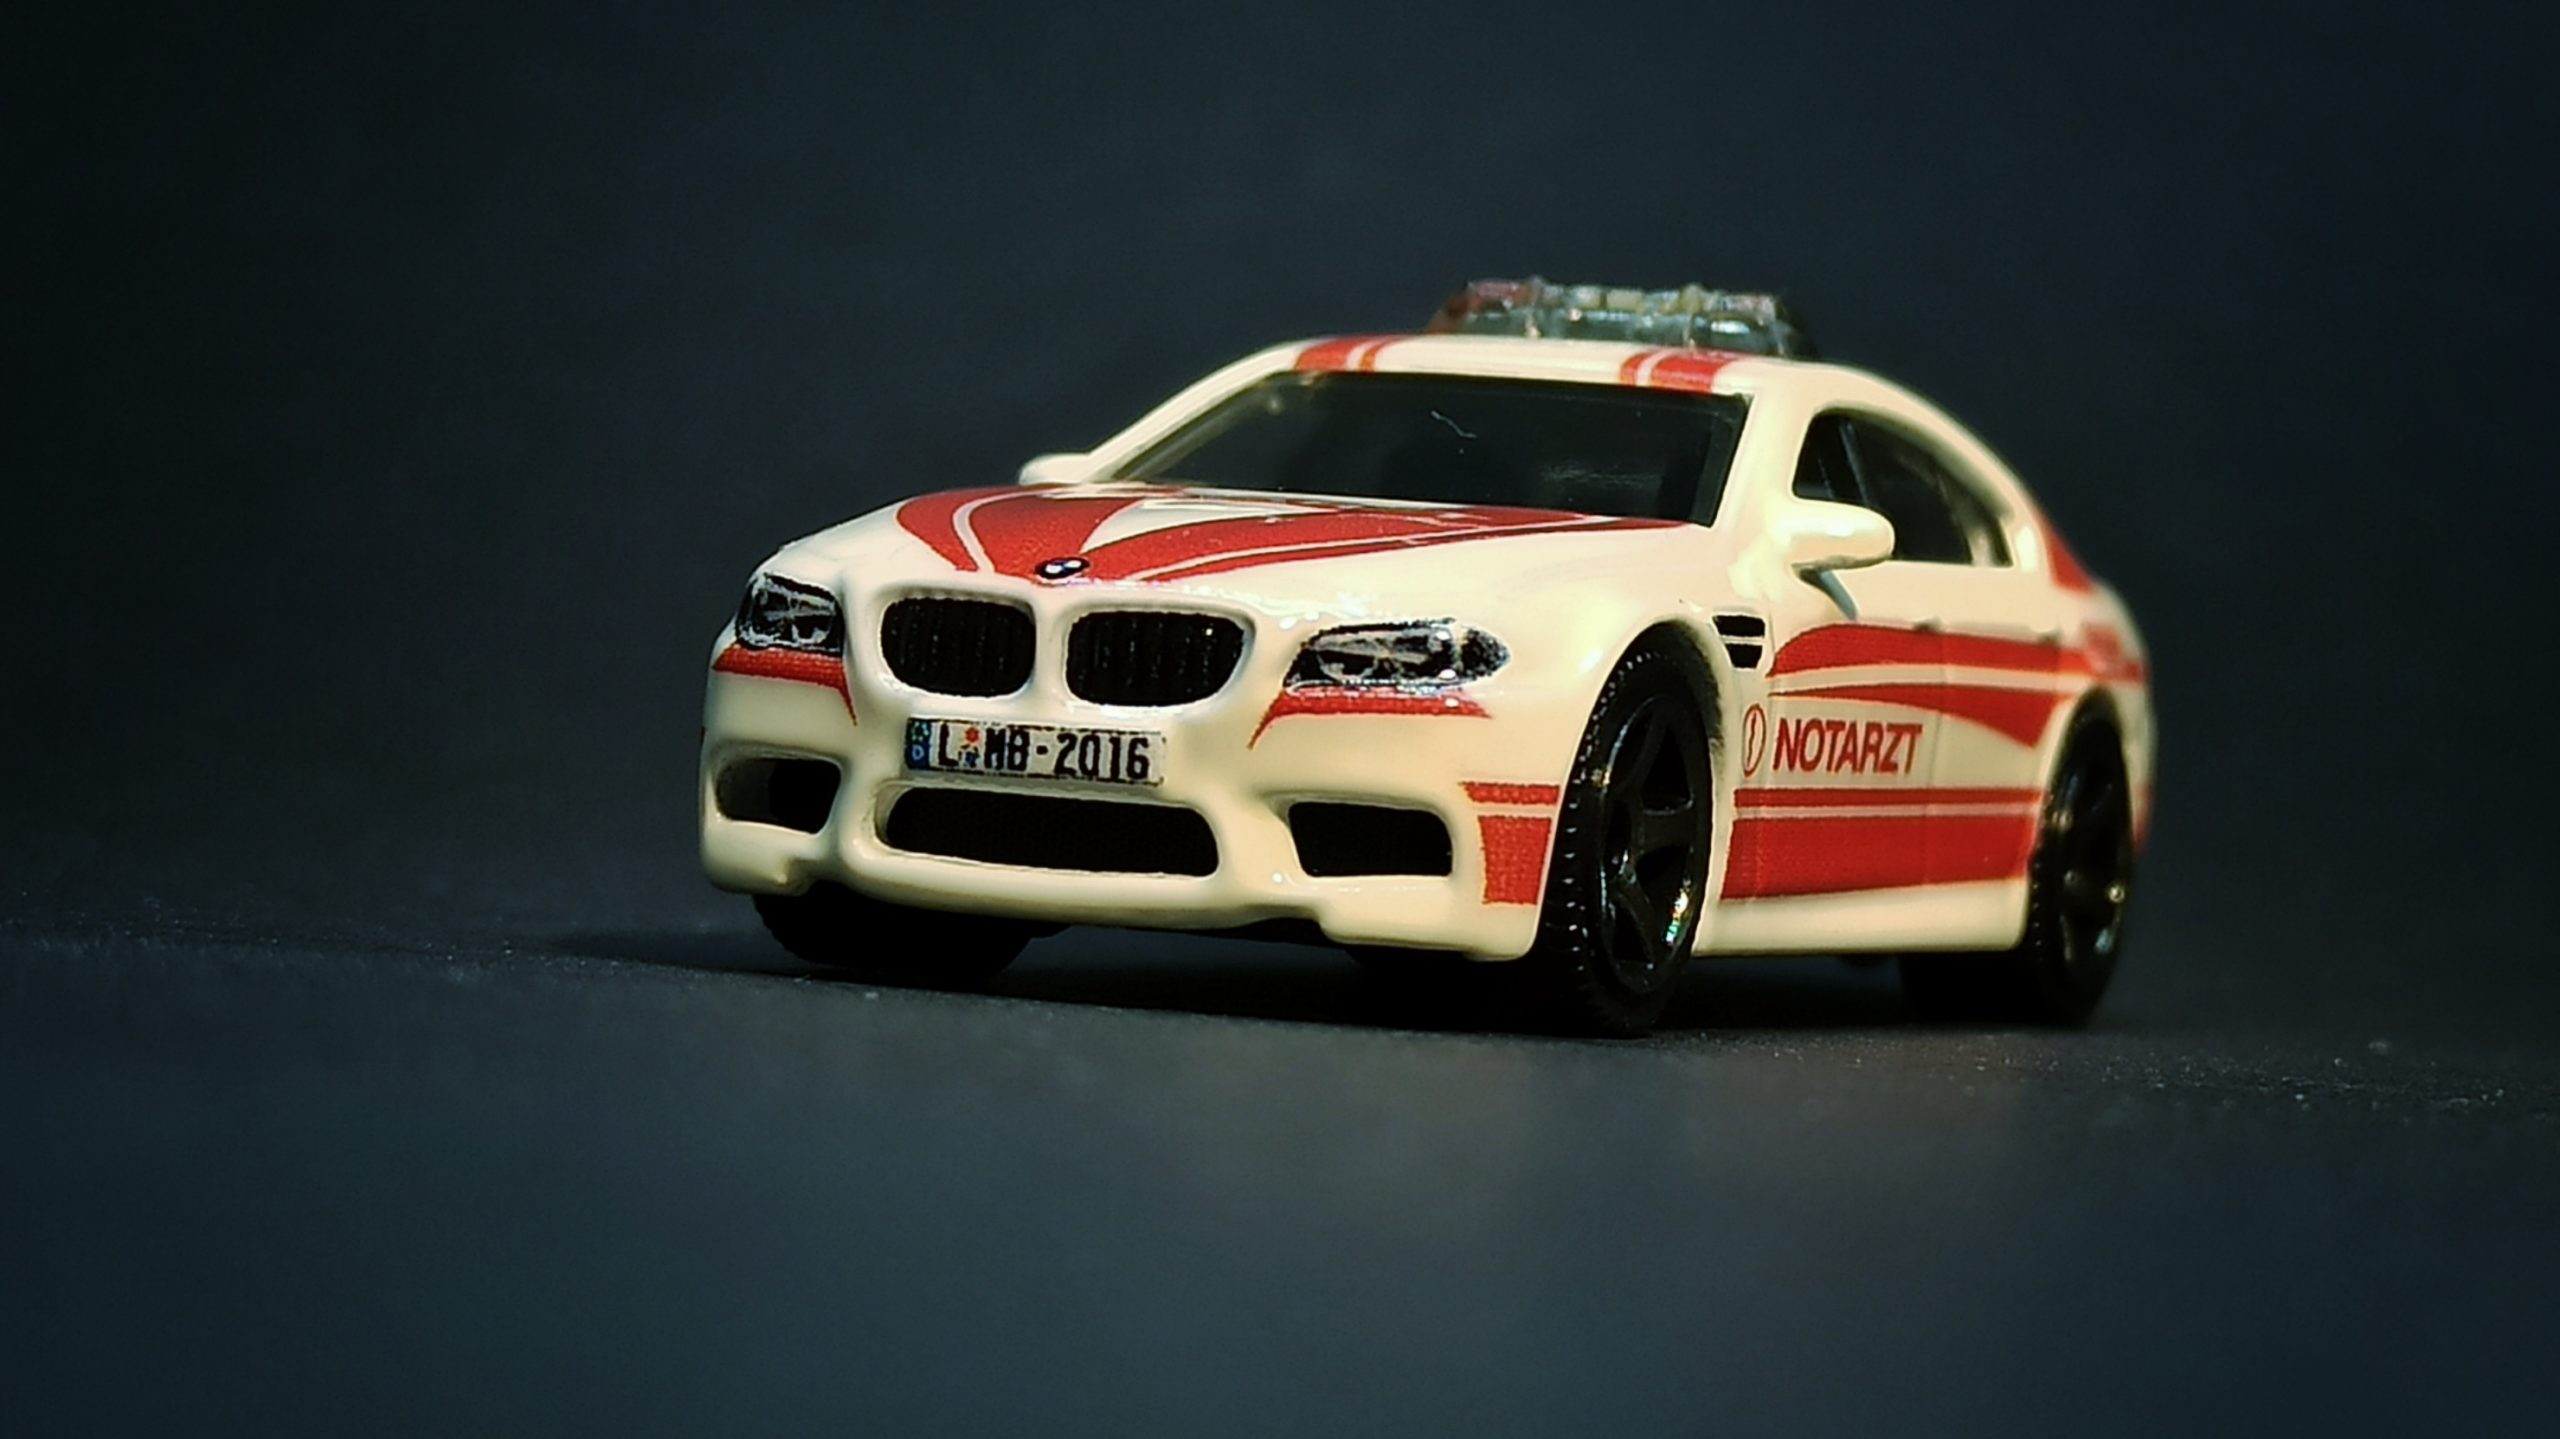 """Matchbox BMW M5 Police 2016 Toy Fair """"Modell Hobby Spiel"""" Leipzig white MBX Notarzt front angle"""